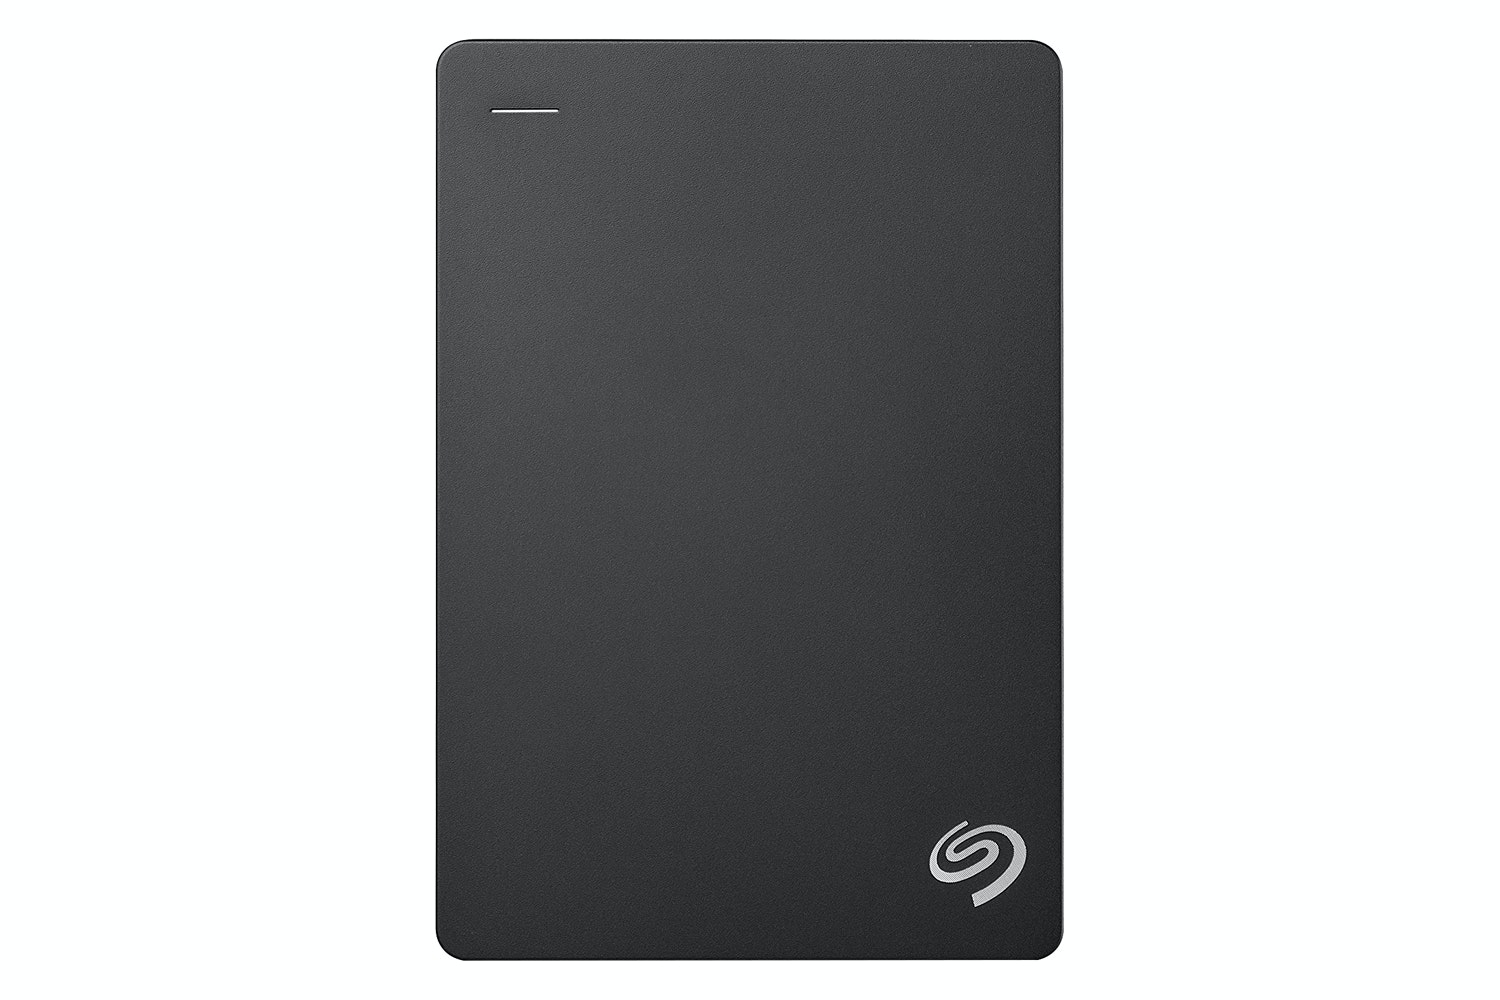 Seagate Backup Plus Portable Hard Drive | 4TB | Black